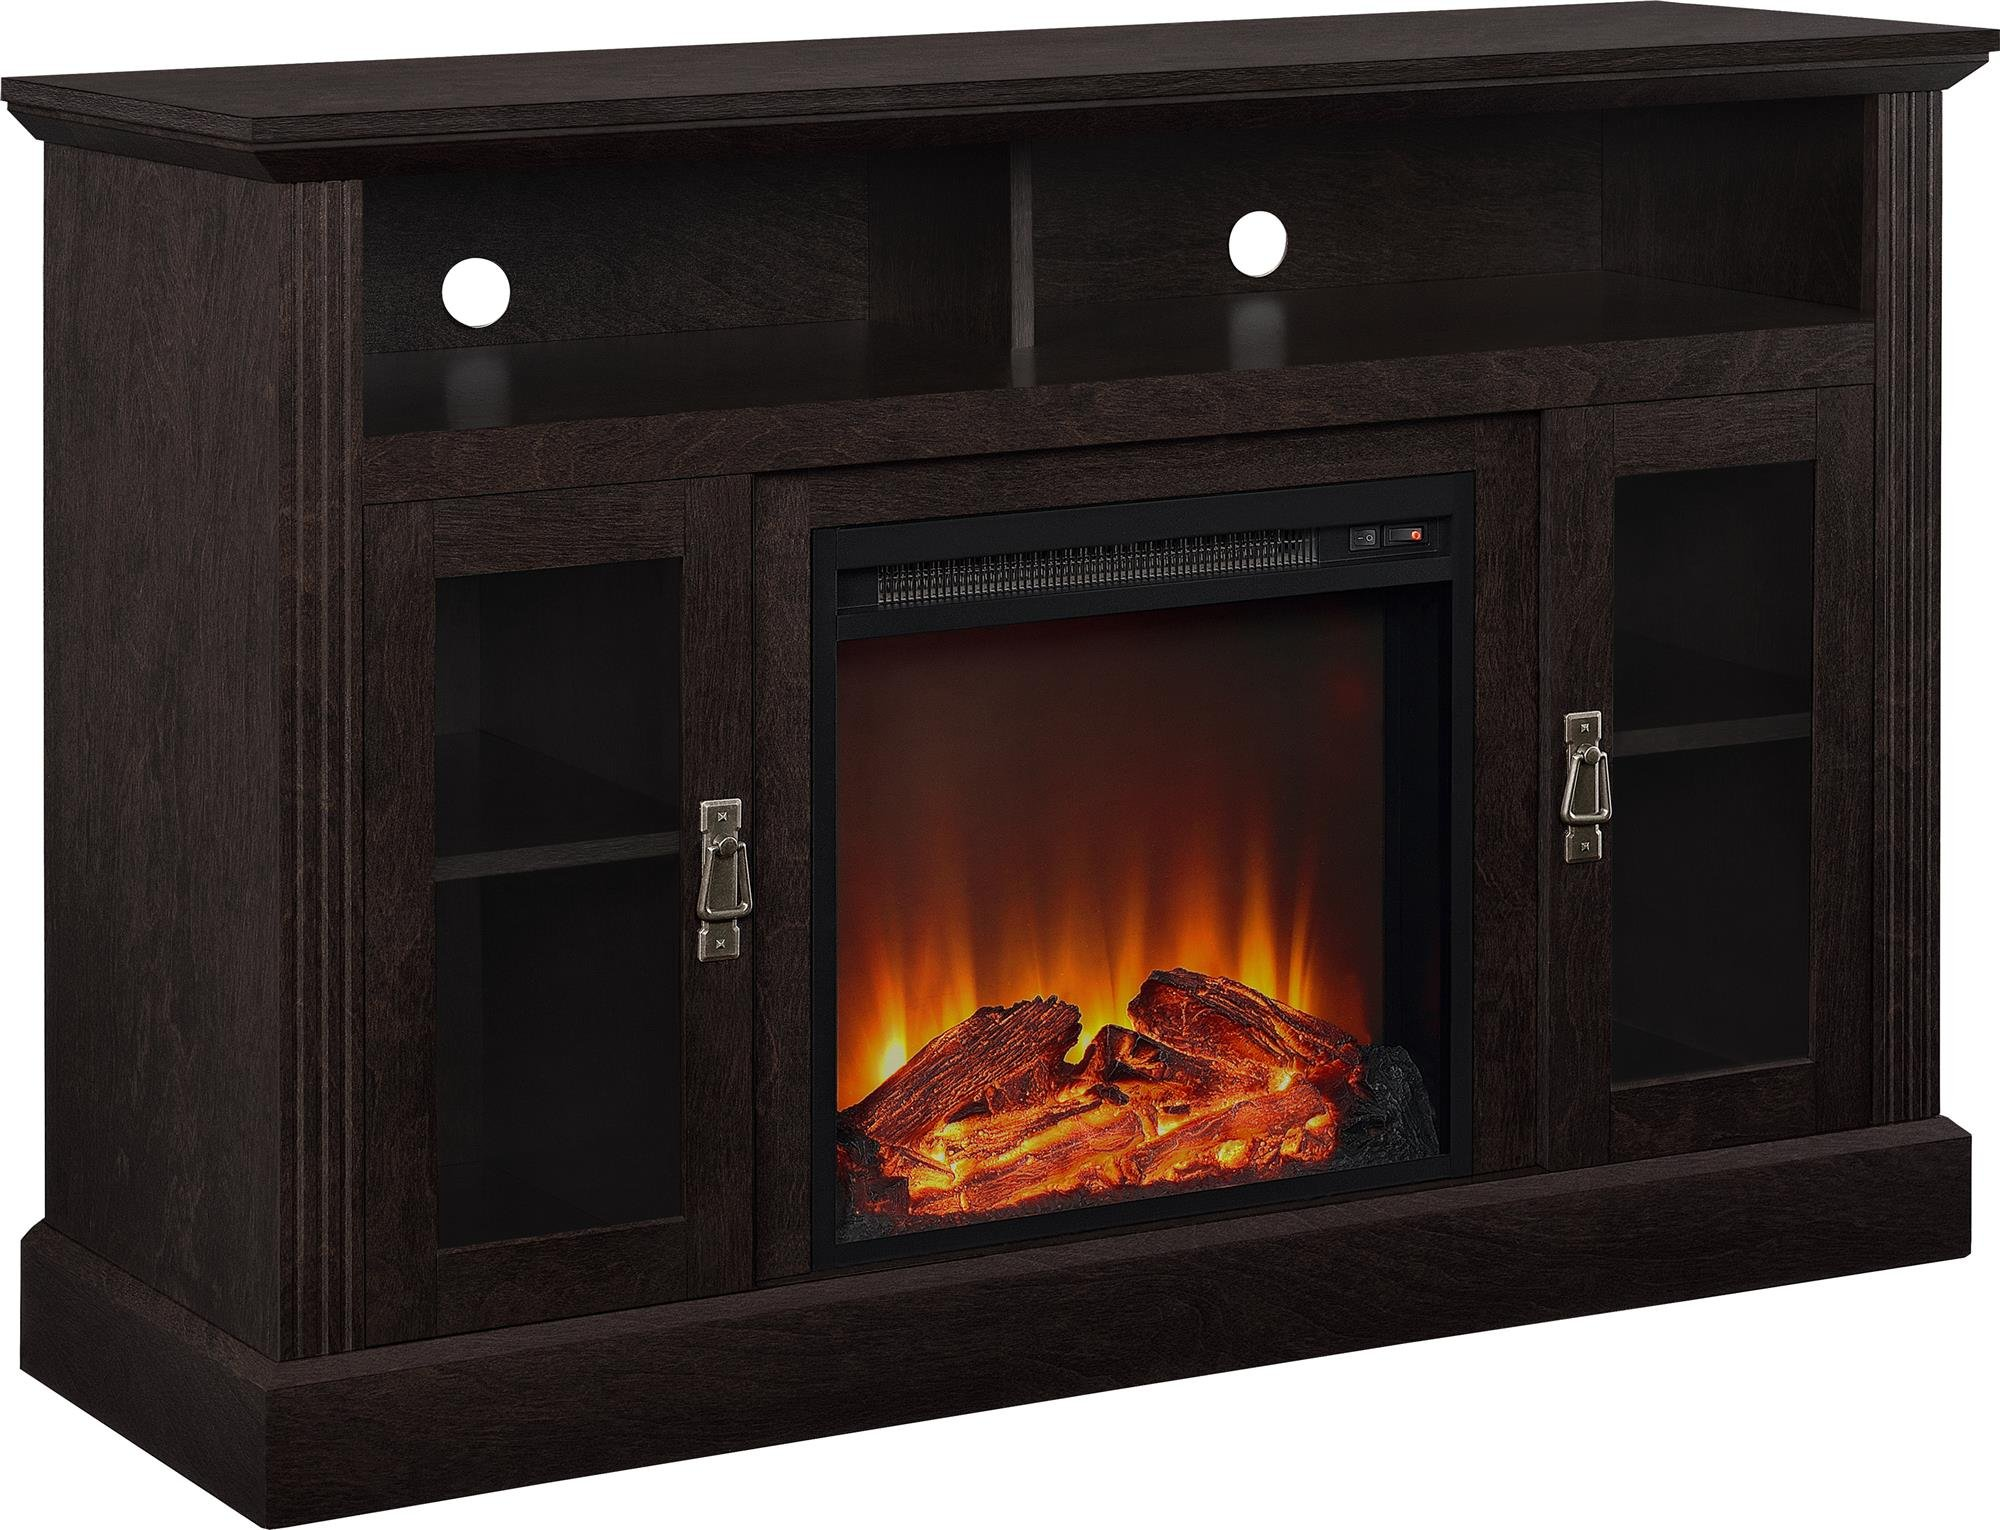 Ameriwood Home Chicago Electric Fireplace TV Console for TVs up to a 50'', Espresso by Ameriwood Home